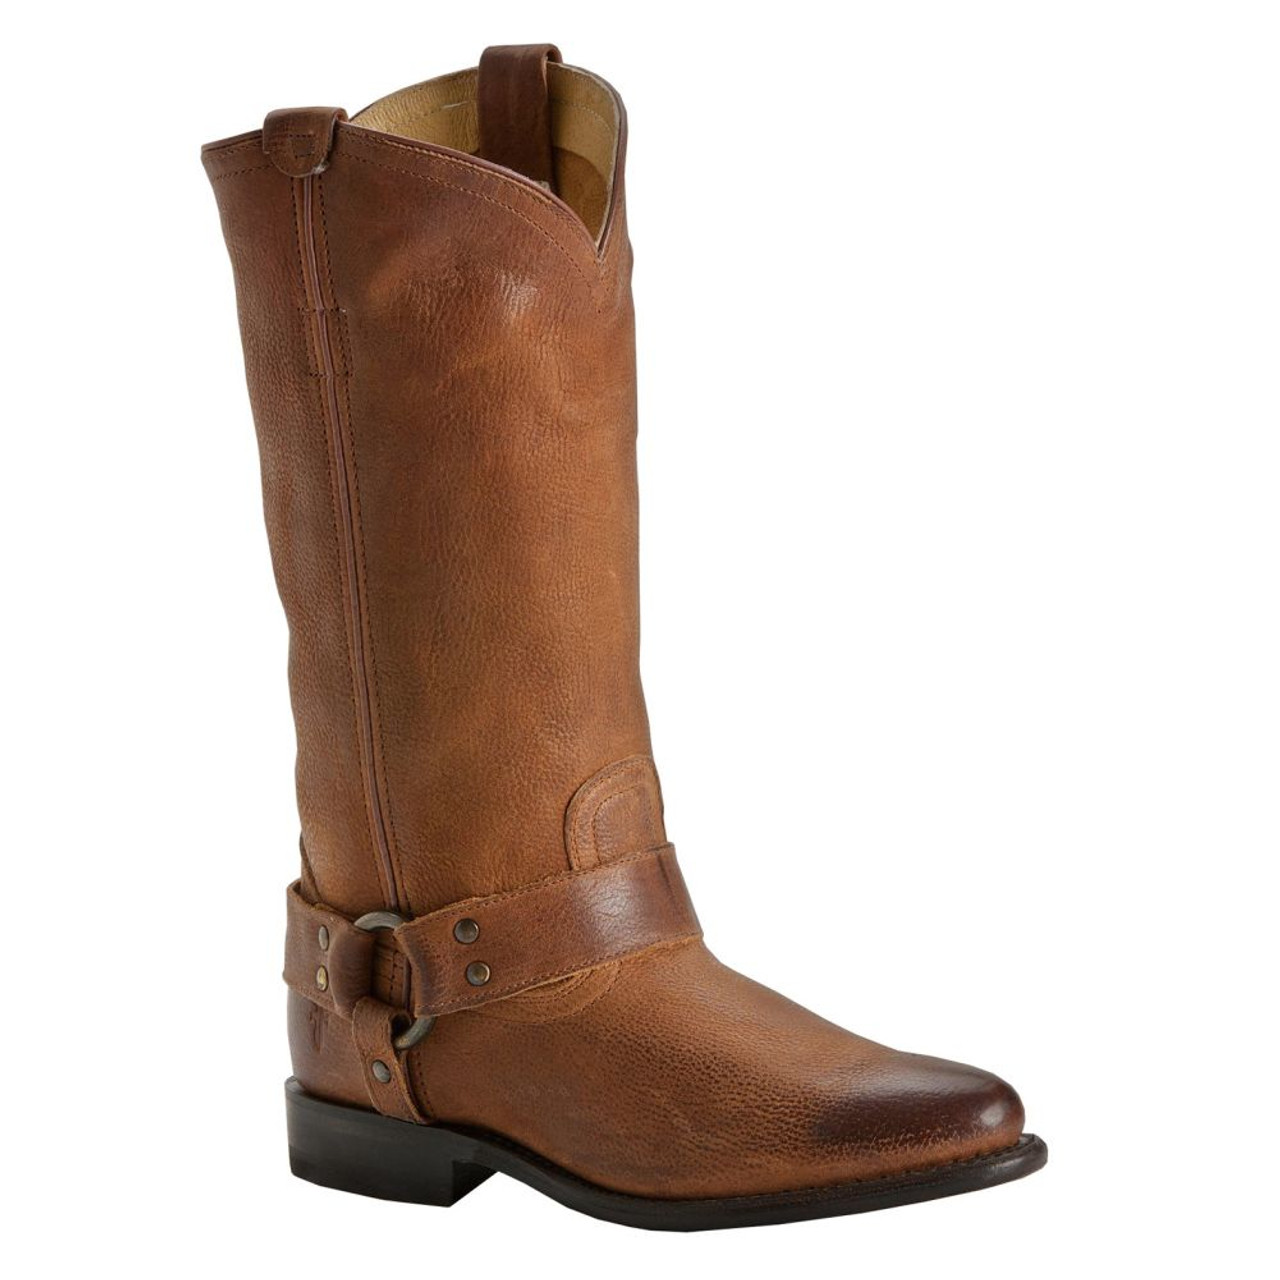 5feb655c32d FRYE Women's Wyatt Harness Boots Tan Distressed Nubuck